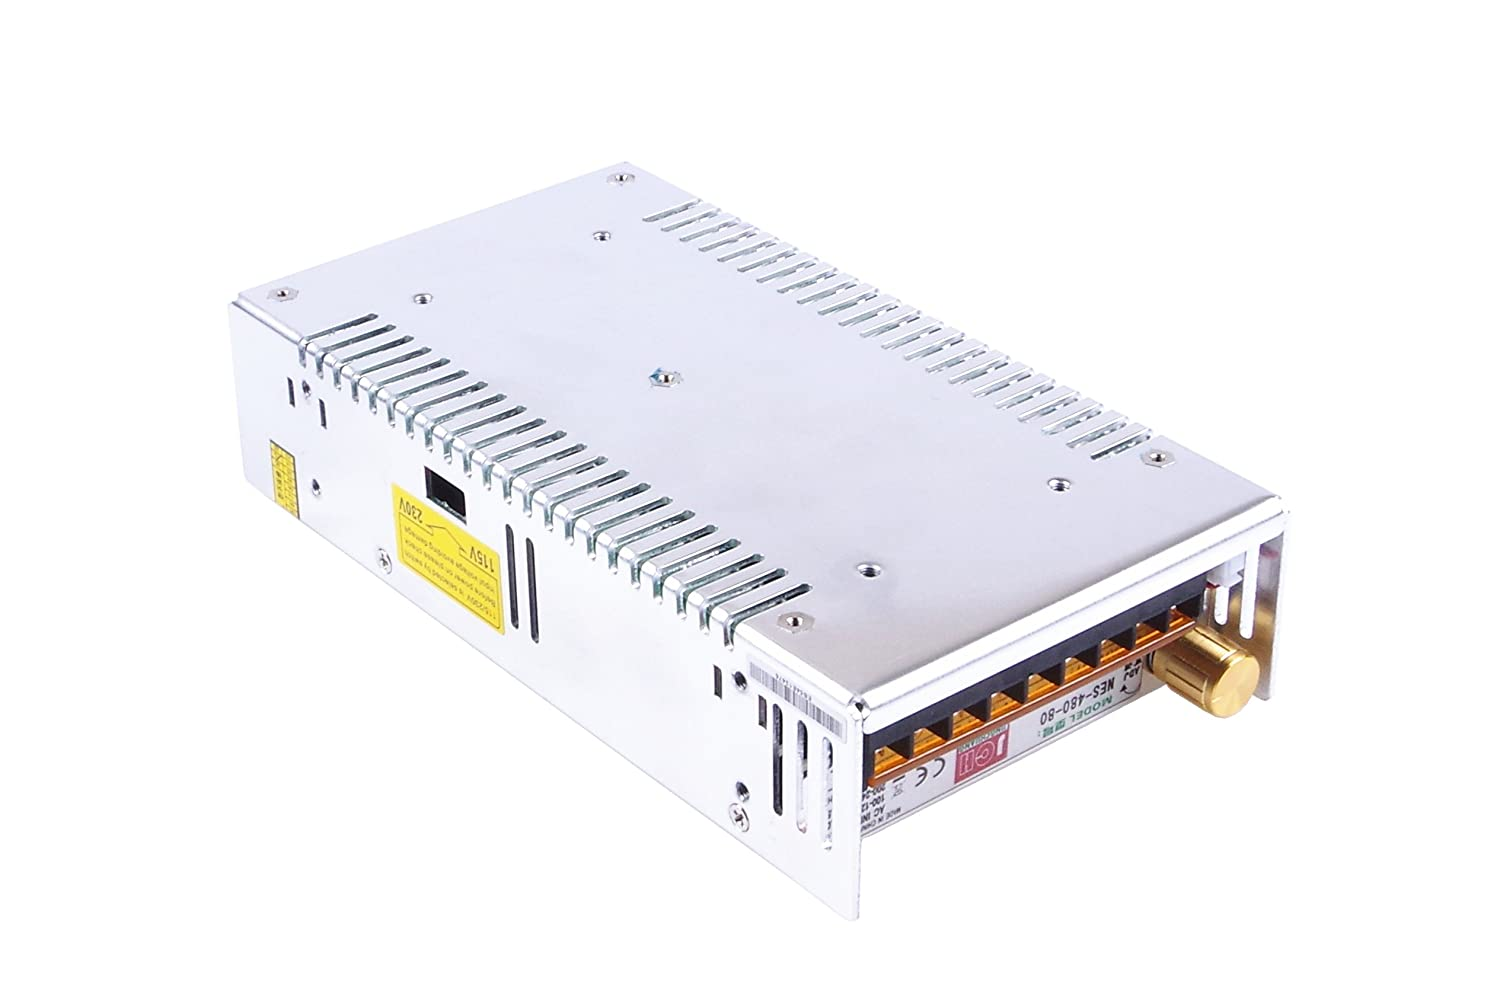 Lm Yn Dc 0 48v 10a Adjustable Switching Power Supply Laboratory 24v 4a Industrial Grade High Precision Stability Ce Rohs For Control